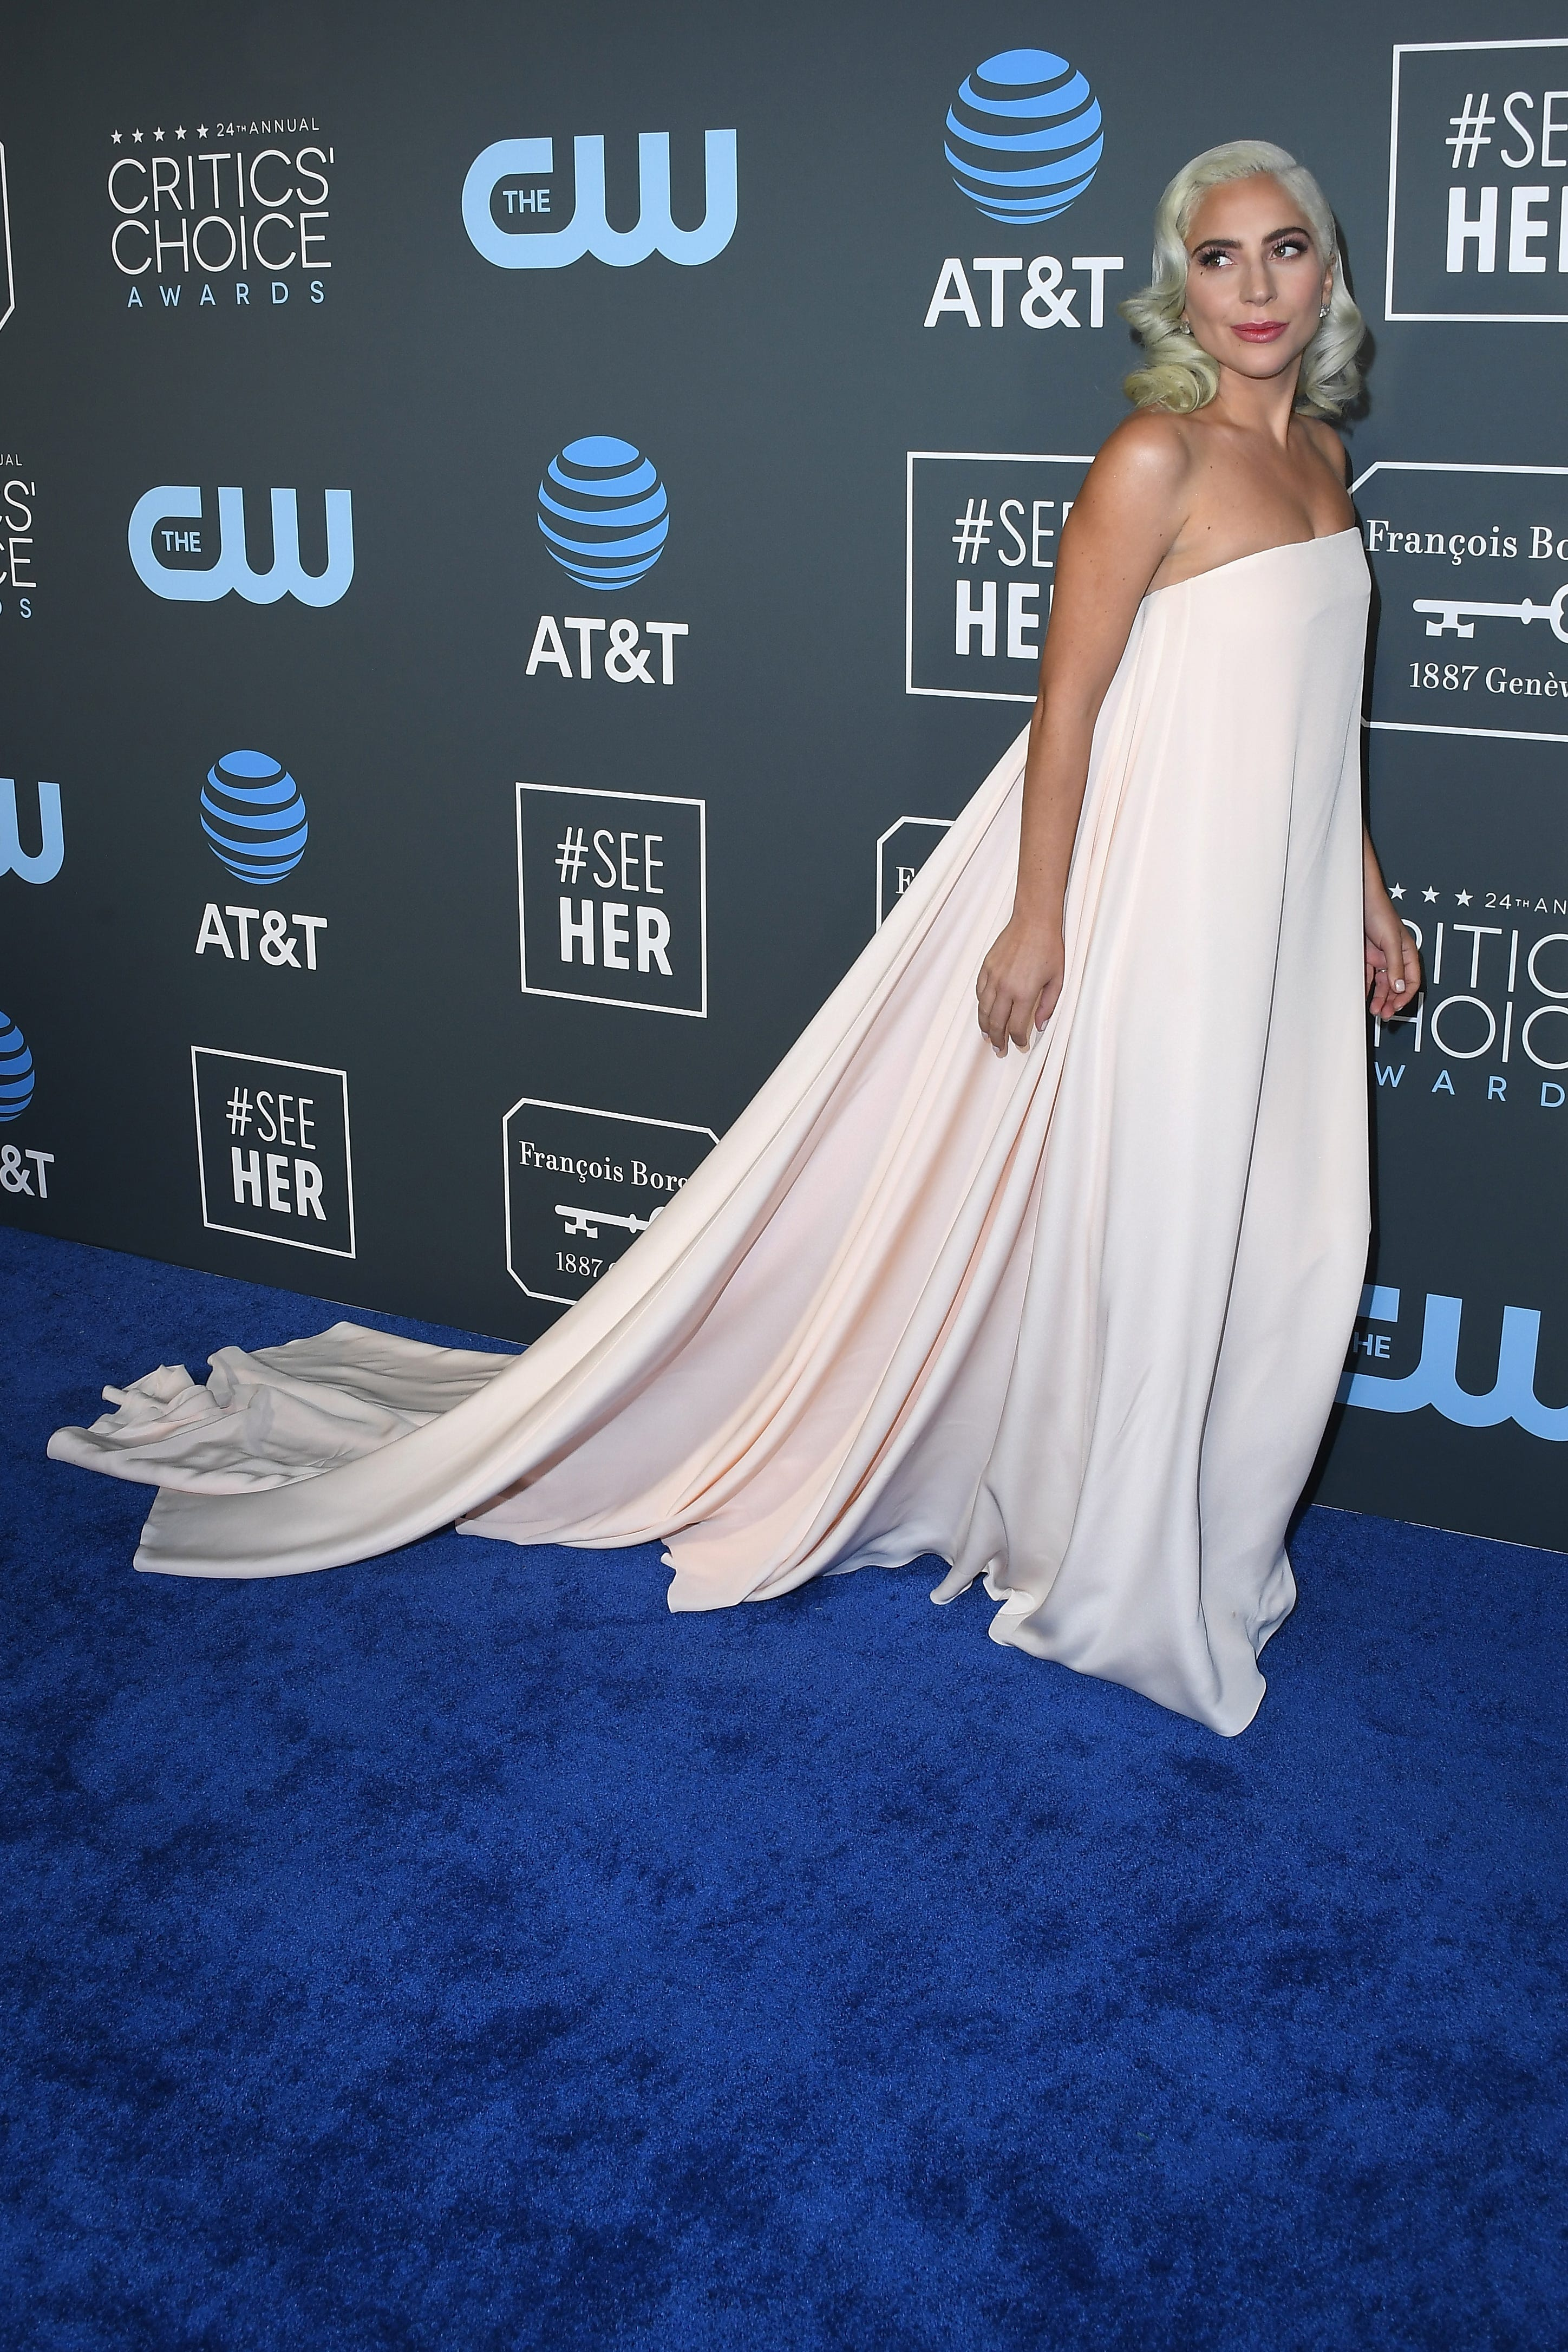 Critics' Choice Awards 2019: The best dressed stars, from Lady Gaga to Charlize Theron